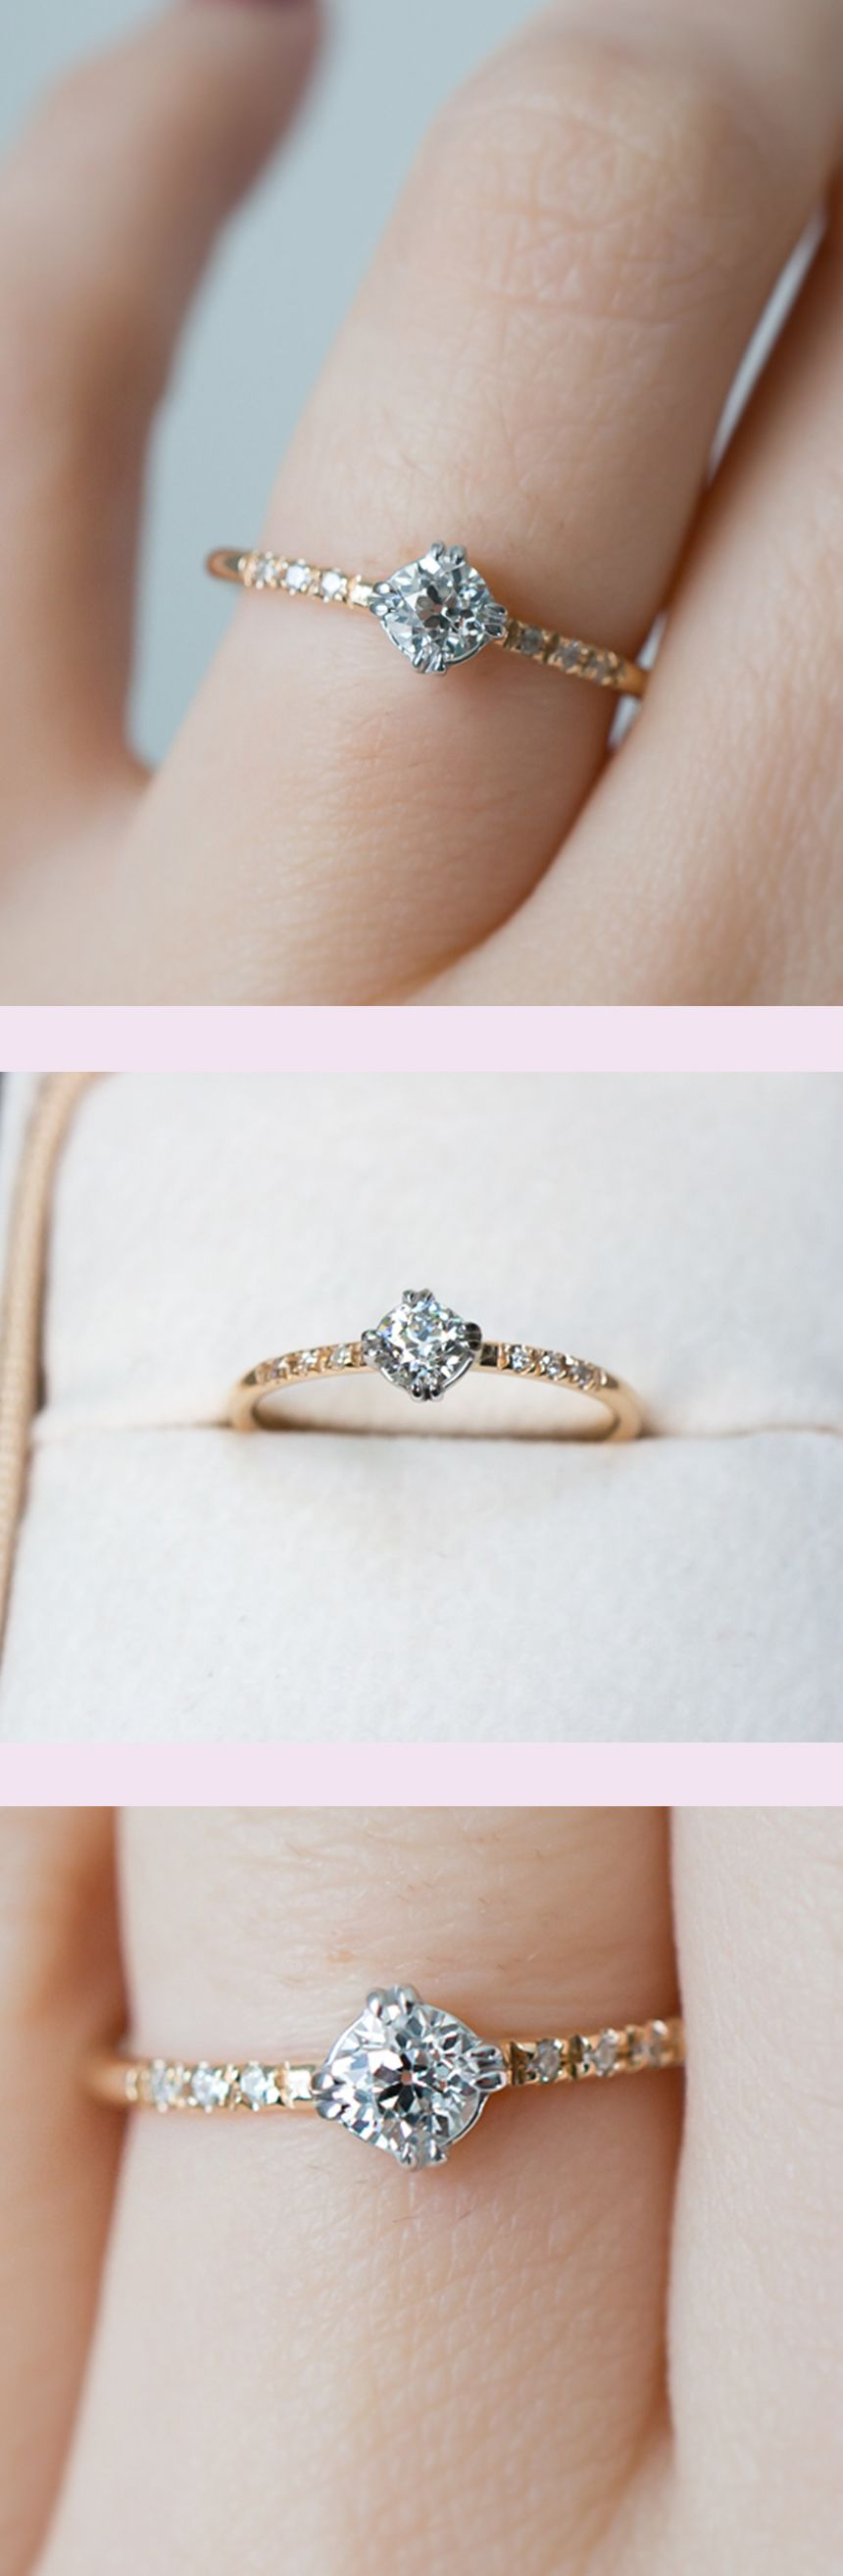 The sweetest vintage diamond engagement ring by S Kind & Co